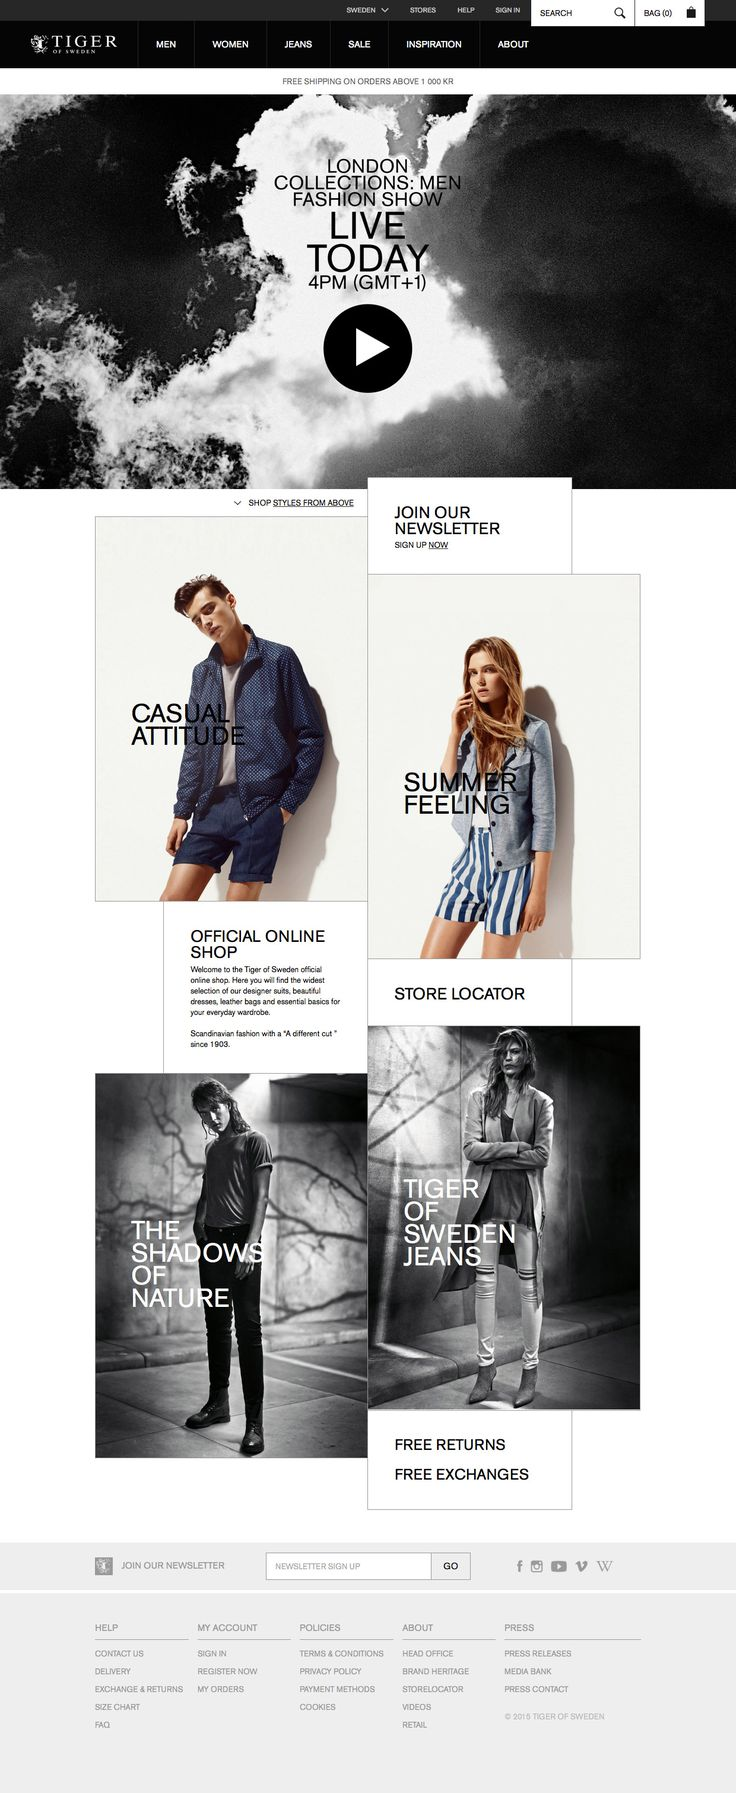 Tiger of Sweden Desktop Home Page Brand language is strongly communicated in the web design of this eCommerce home page. The big sale banner really pops, but the male/female/look book/category links to drill down are kept clear.  - http://www.cartrepublic.com/gallery/2015/07/tiger-of-sweden-desktop-home-page/